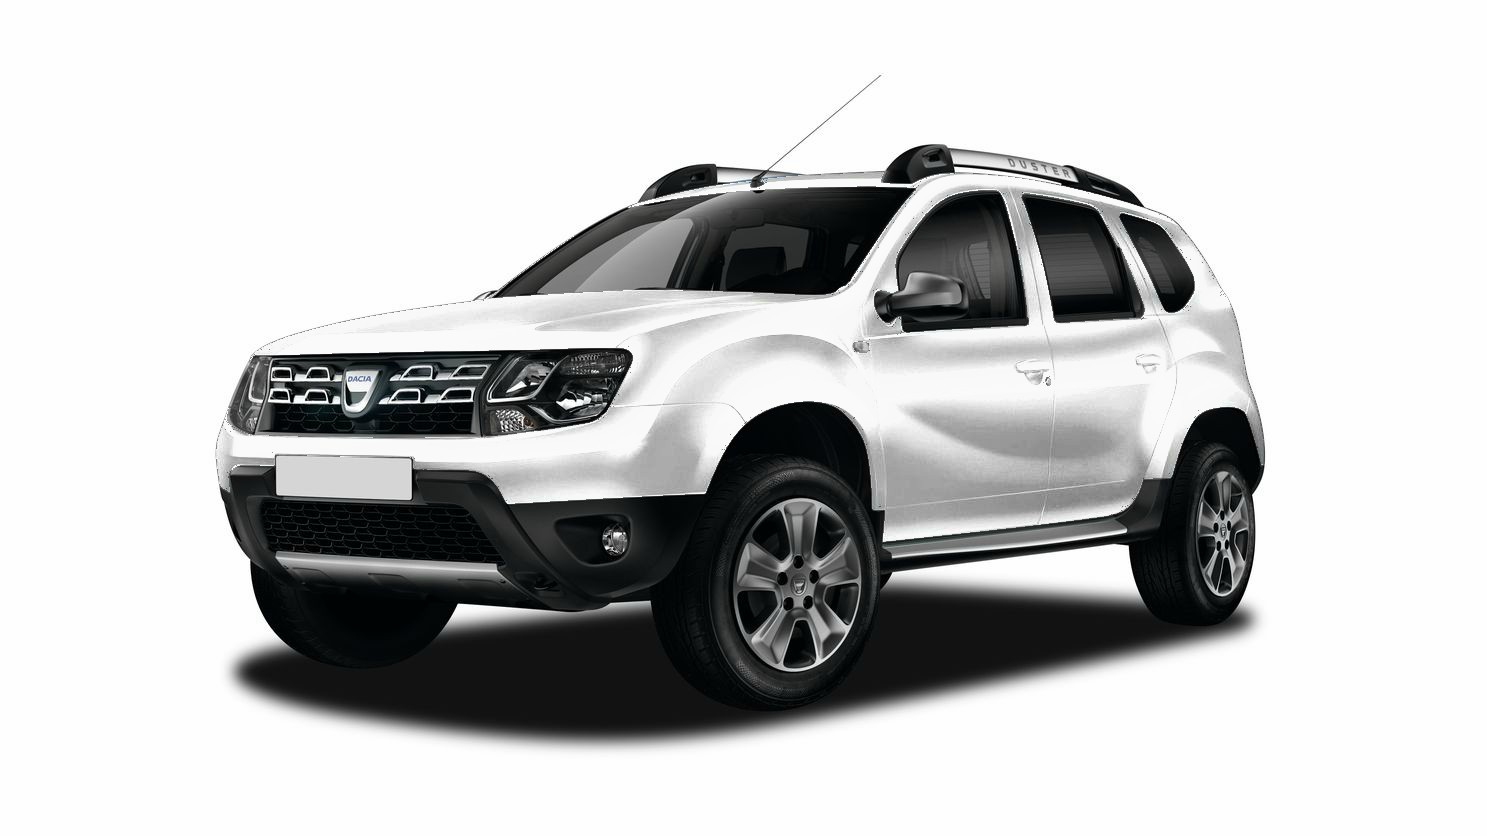 dacia duster 4x4 et suv 5 portes diesel 1 5 dci. Black Bedroom Furniture Sets. Home Design Ideas